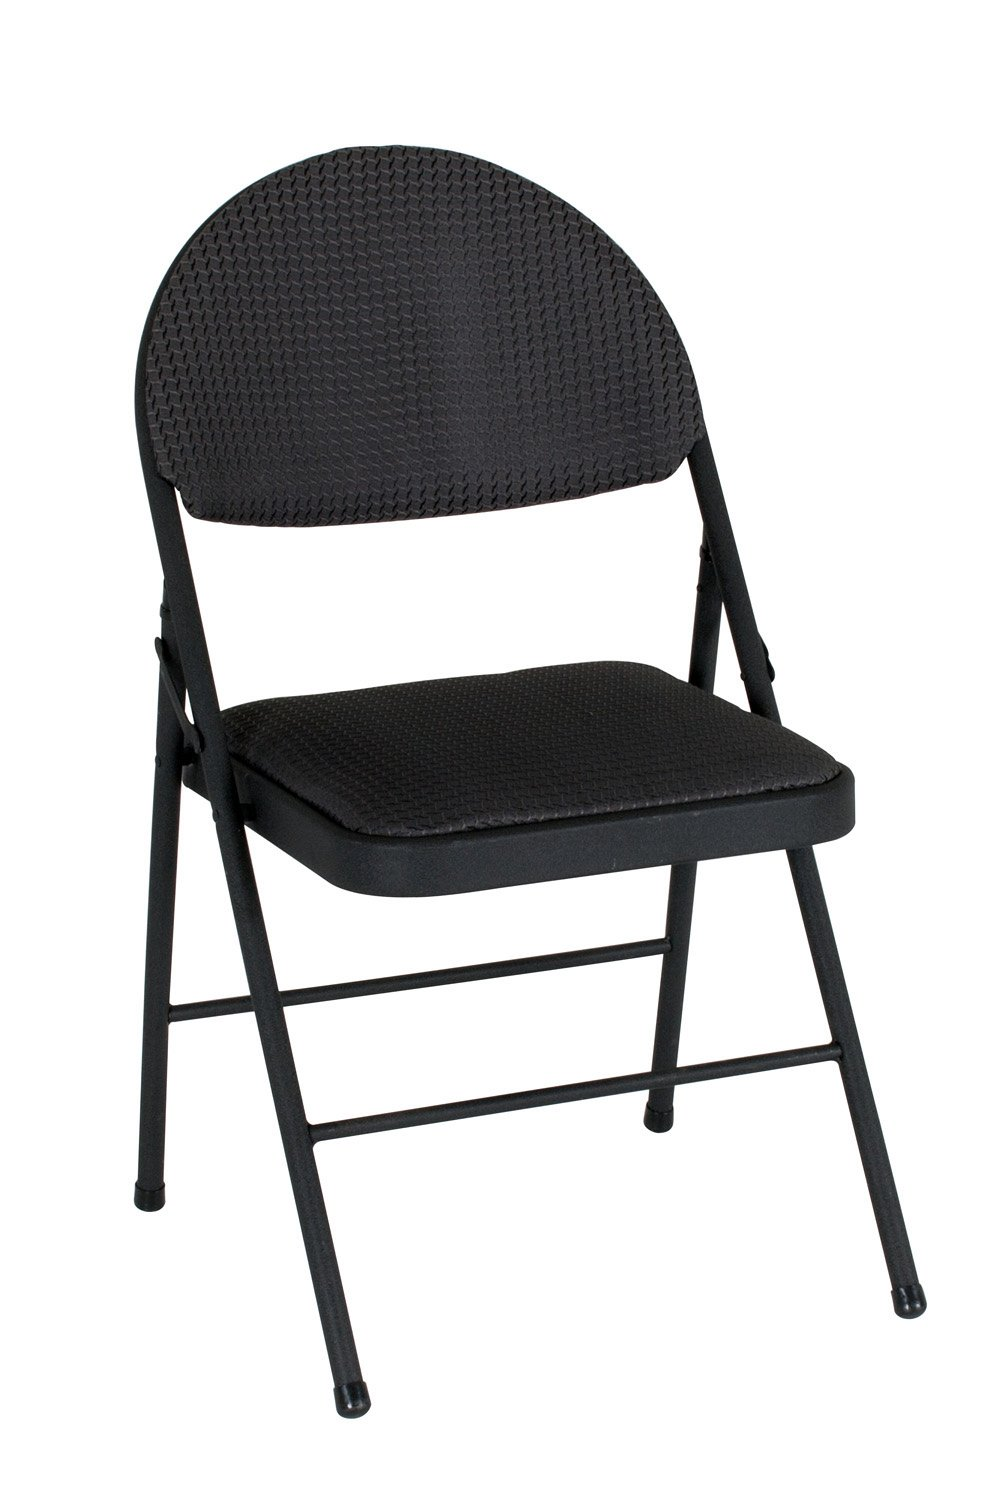 COSCO  XL Comfort Folding Chair Black Fabric (4-pack) by Cosco